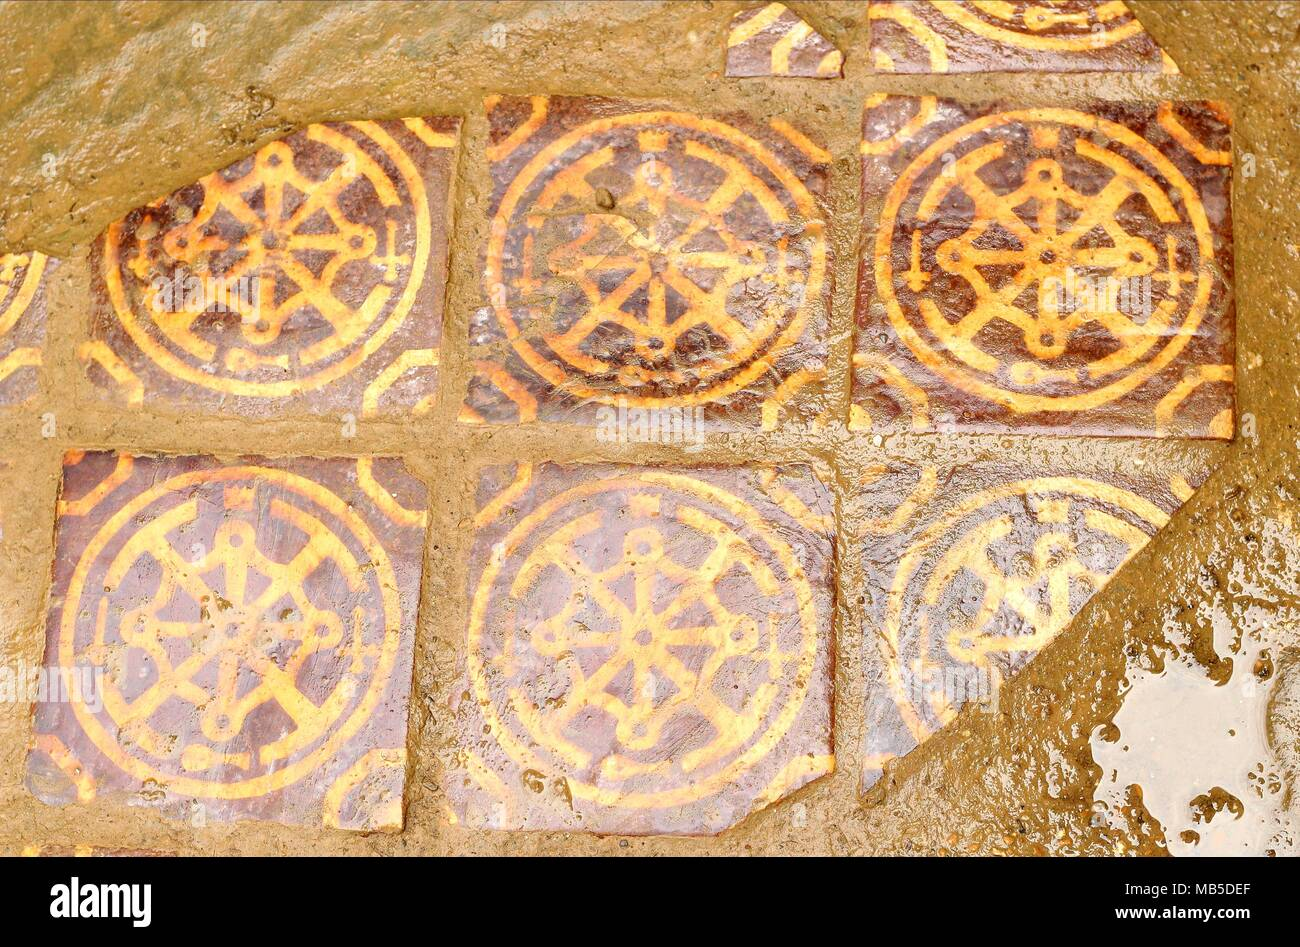 Late Medieval Style Inlay Floor Tiles - Art & Design feature - Stock Image